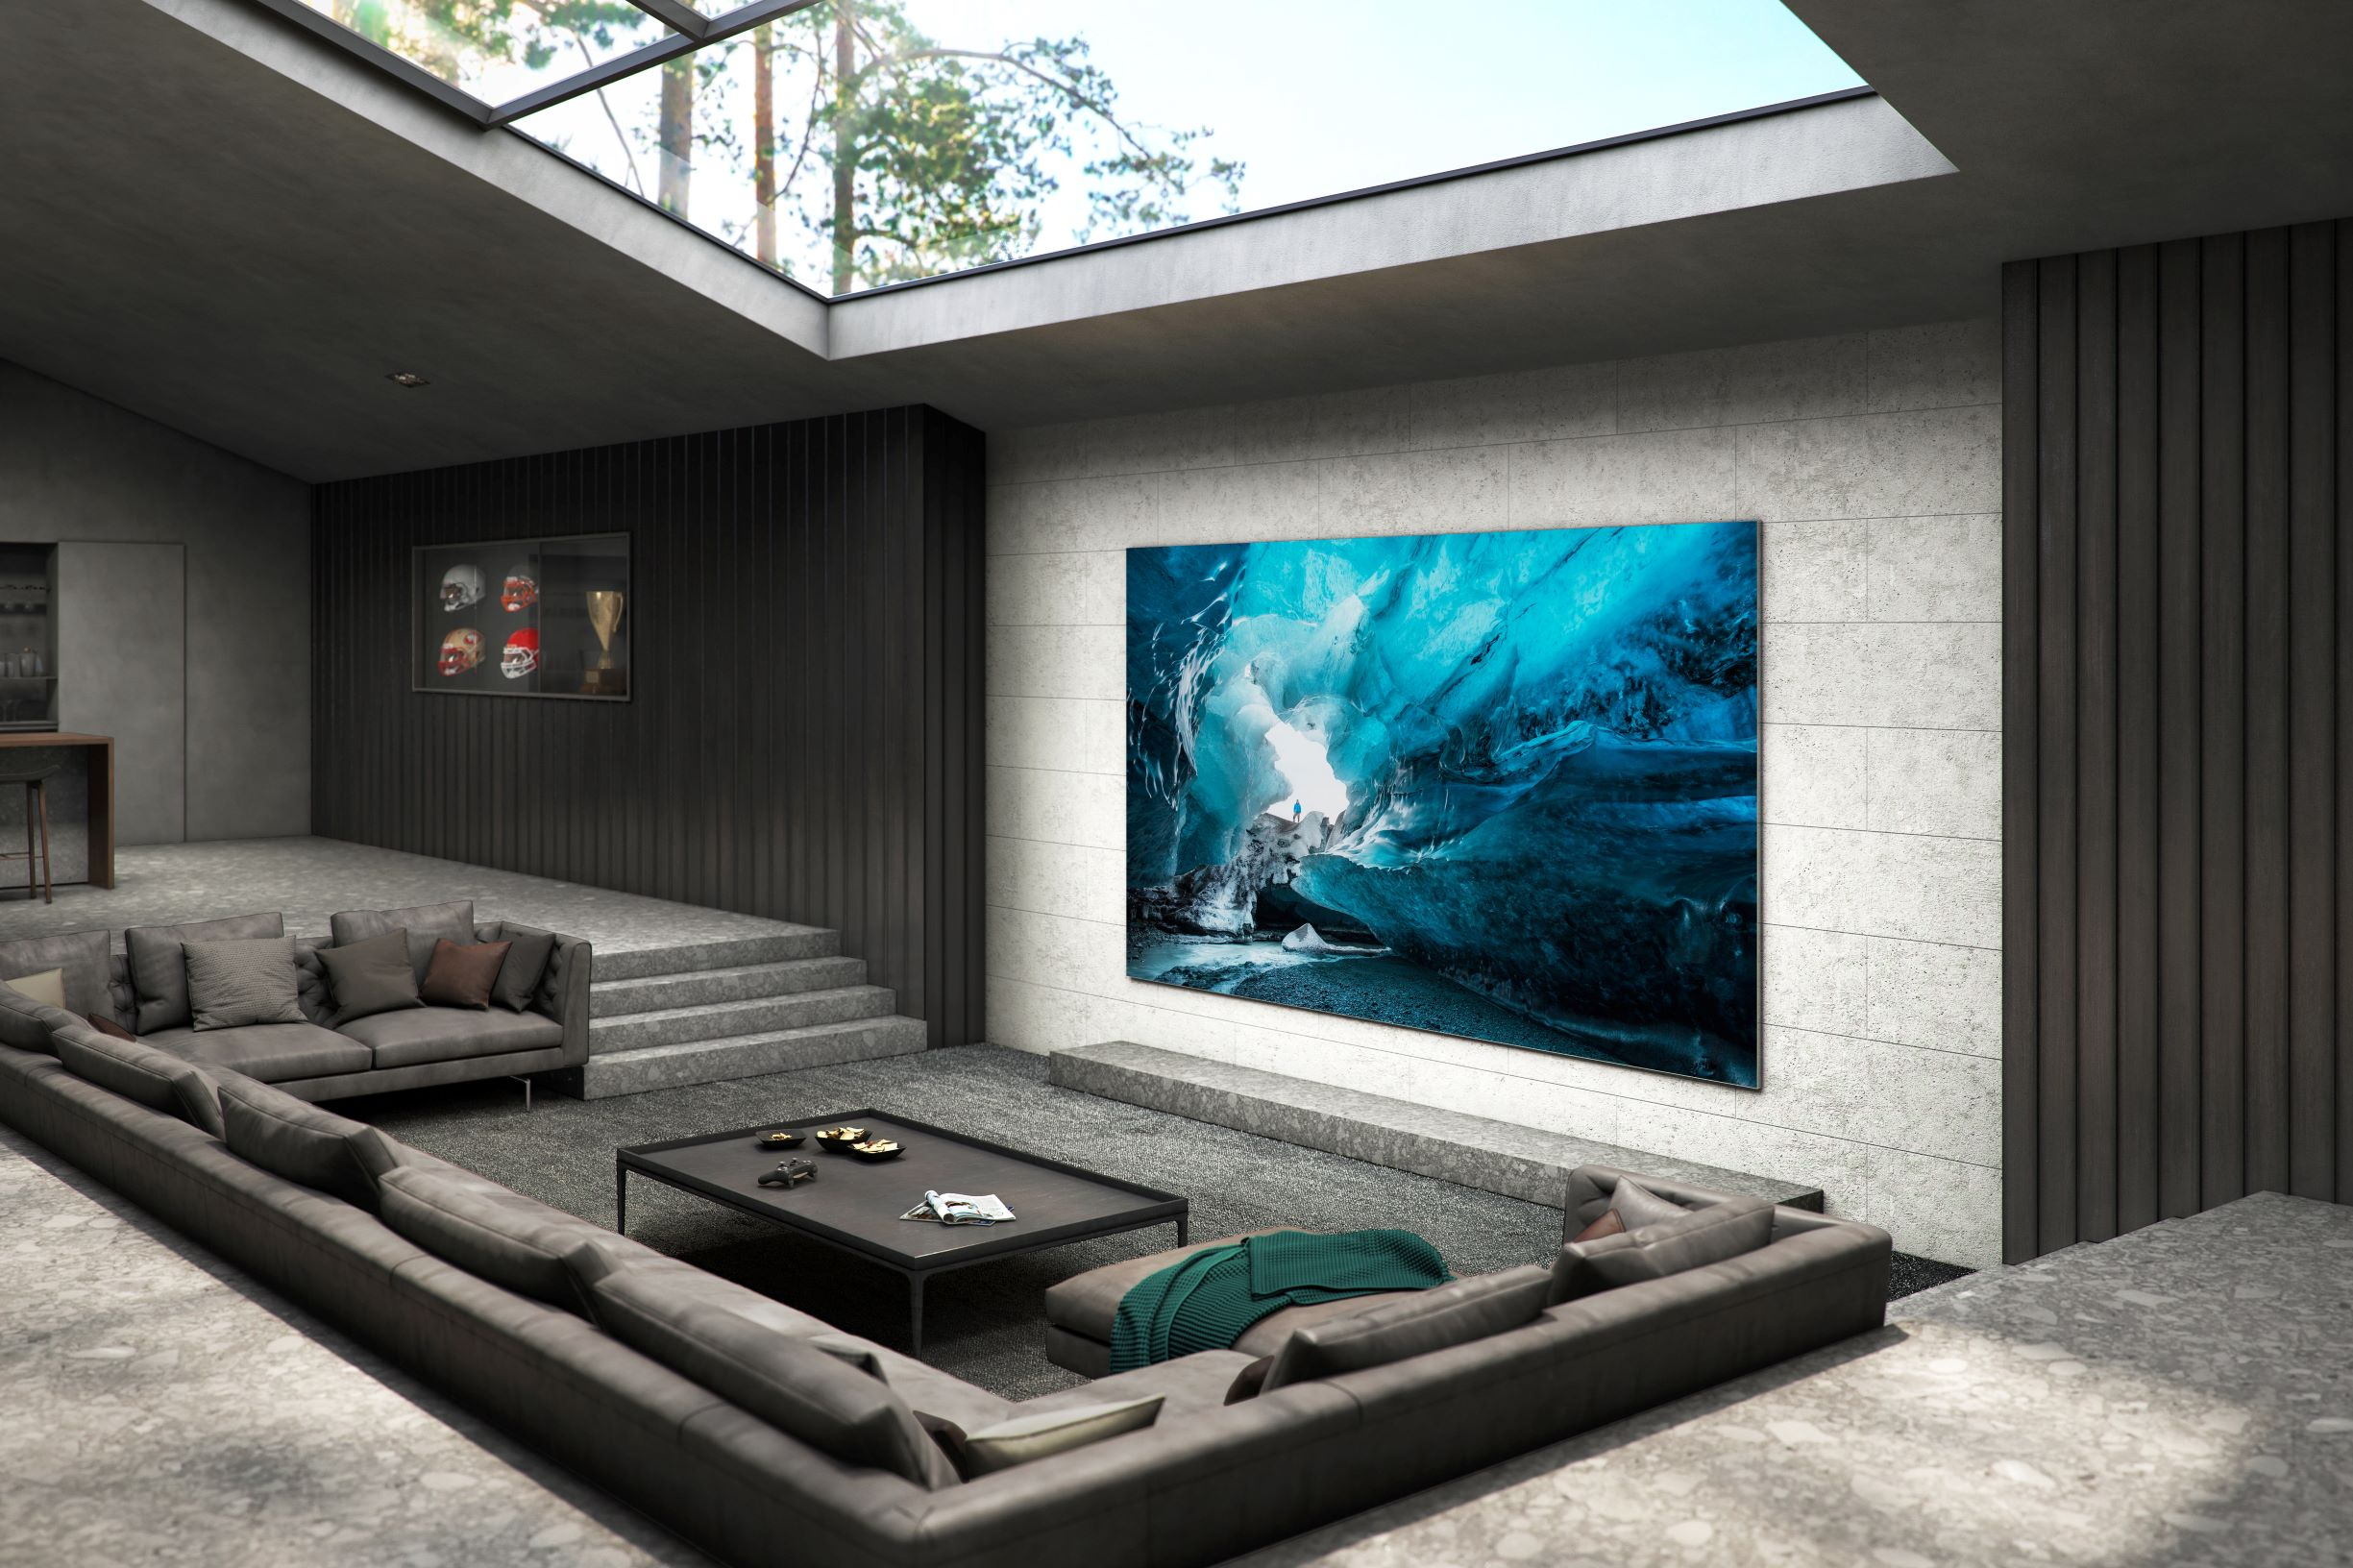 Samsung Announces 110-Inch MicroLED TV